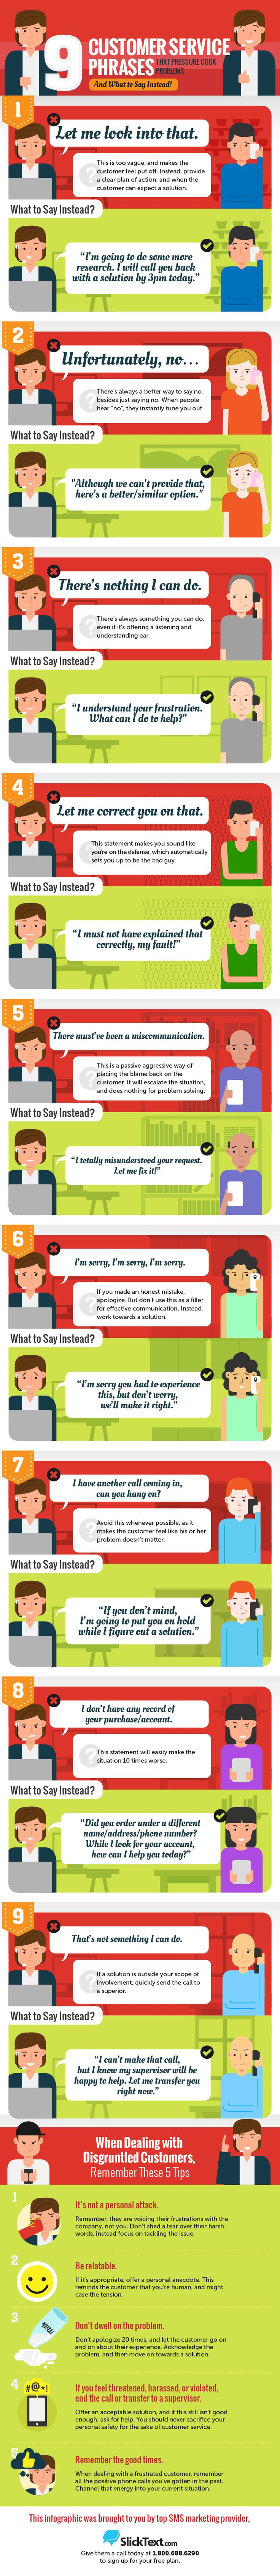 9 Ways to Give Great Customer Service